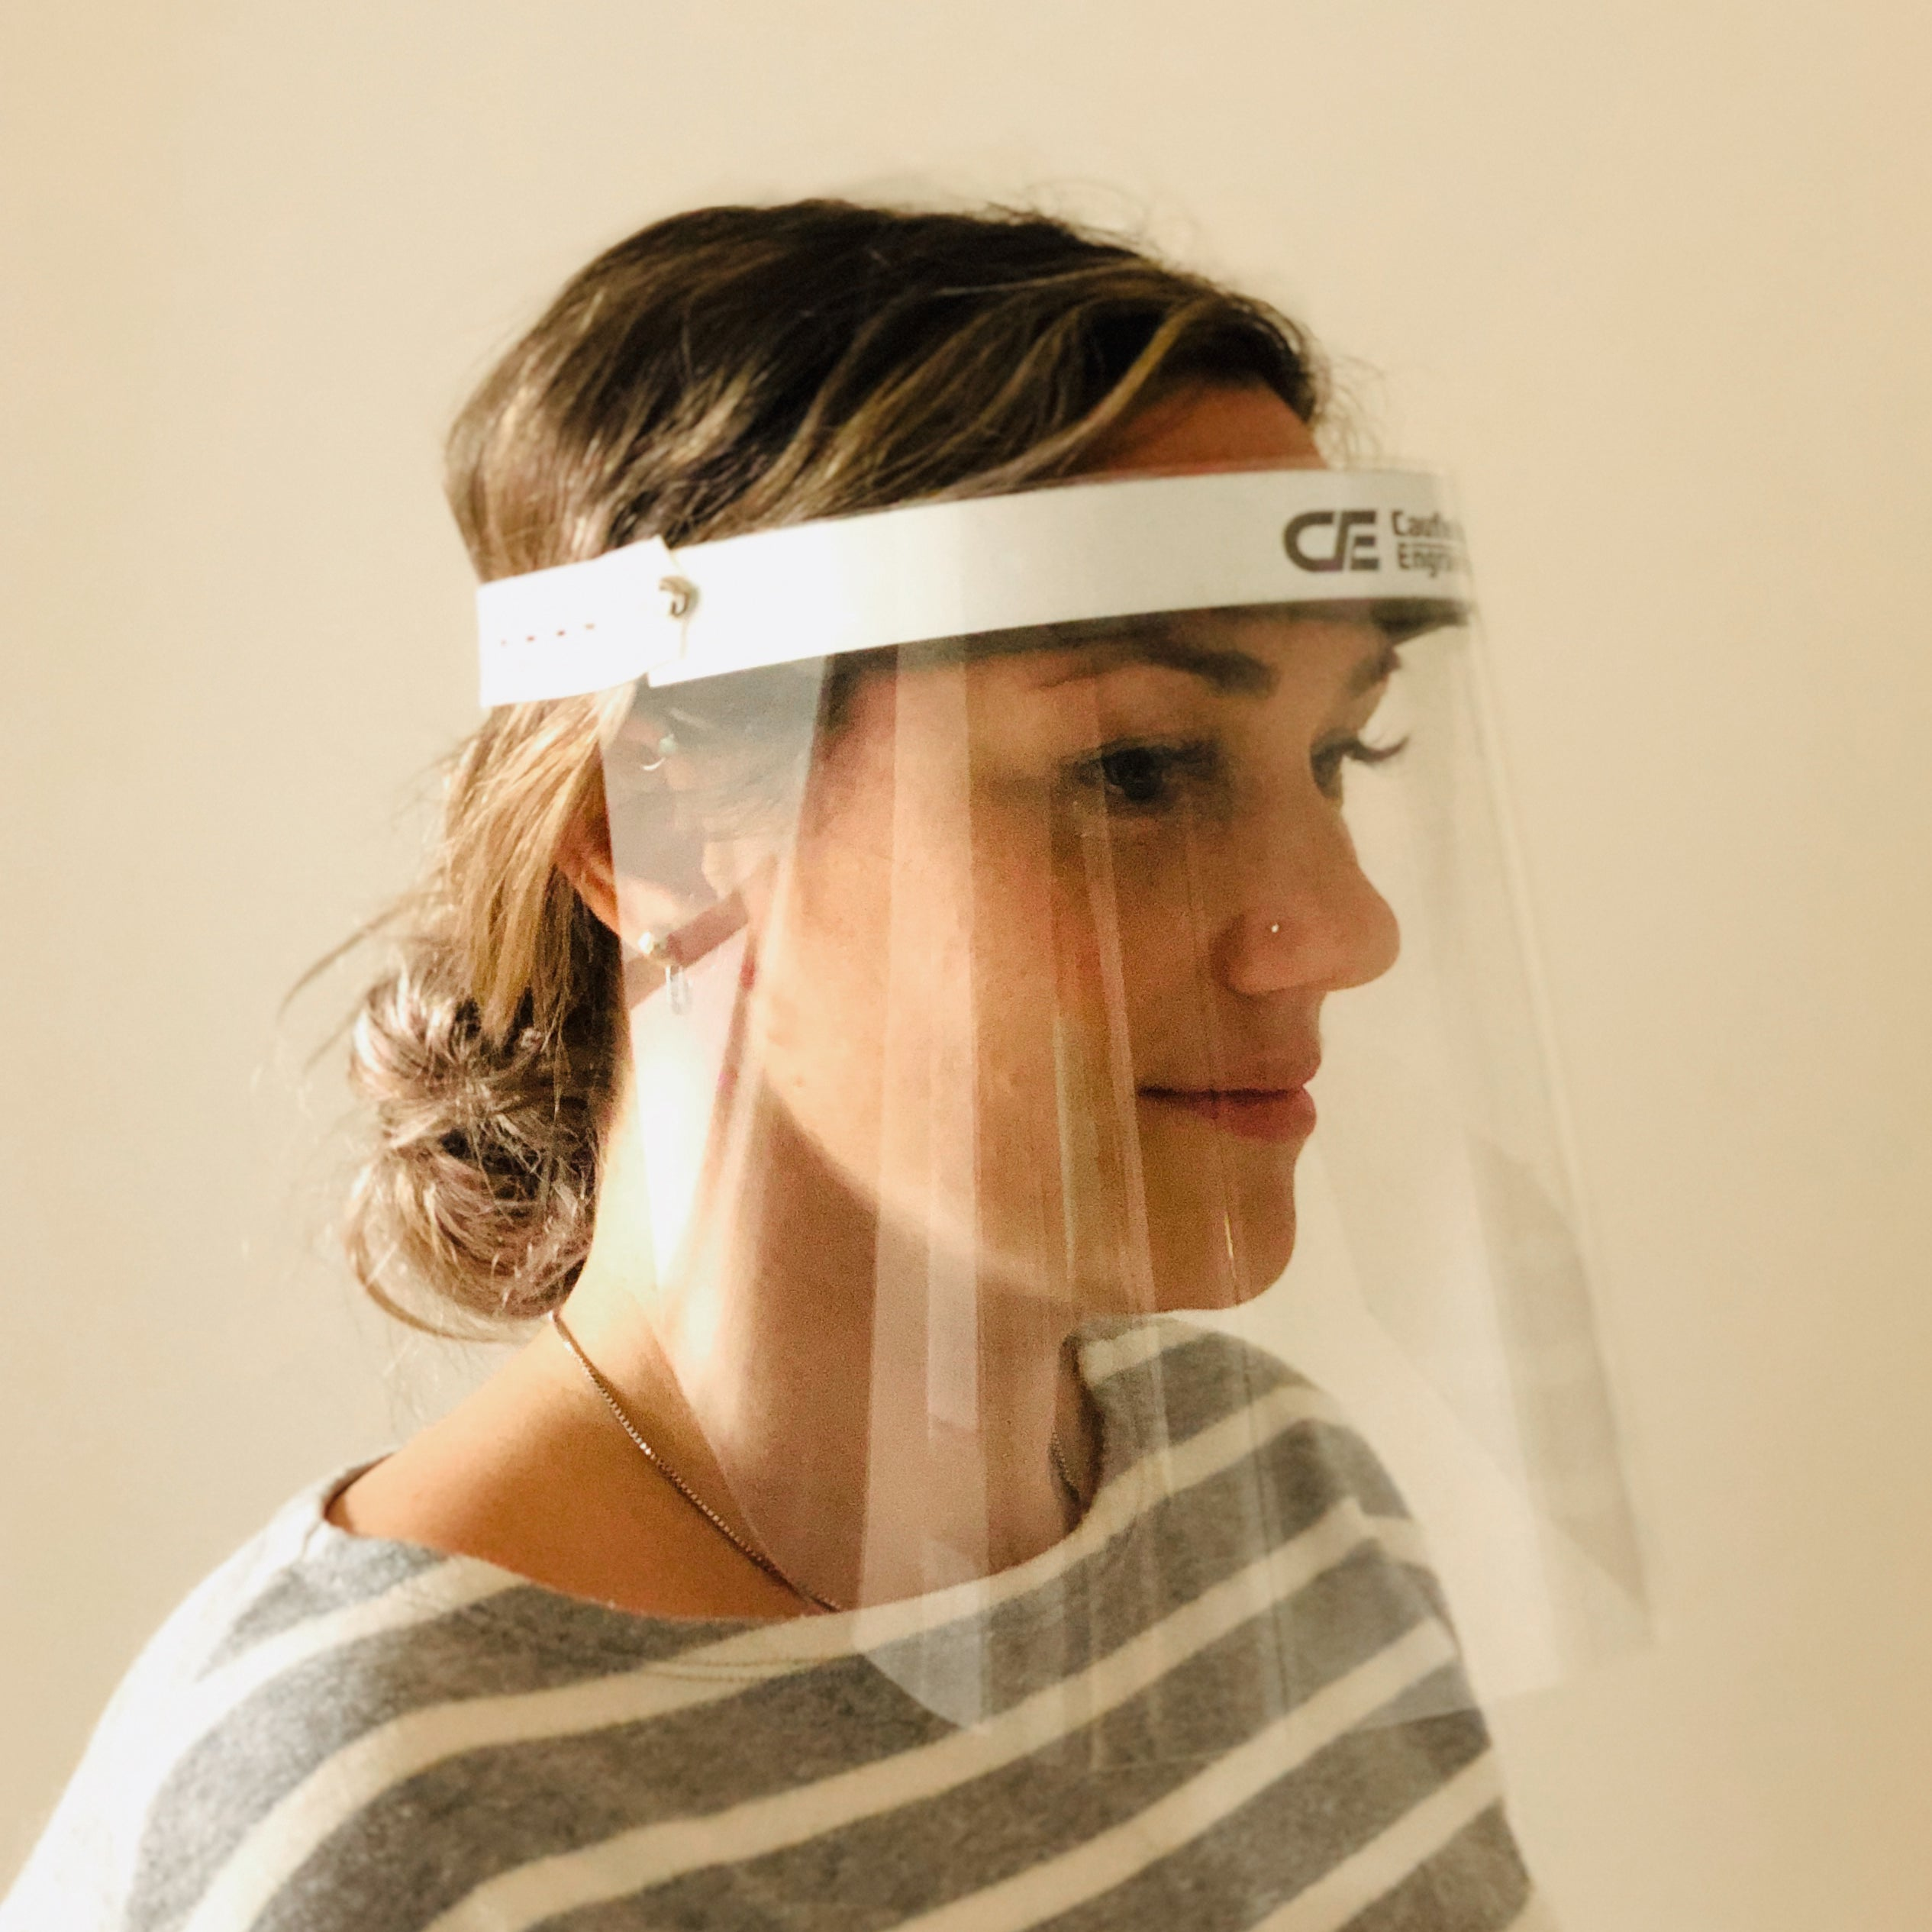 Covid-19 face shield for healthcare professionals